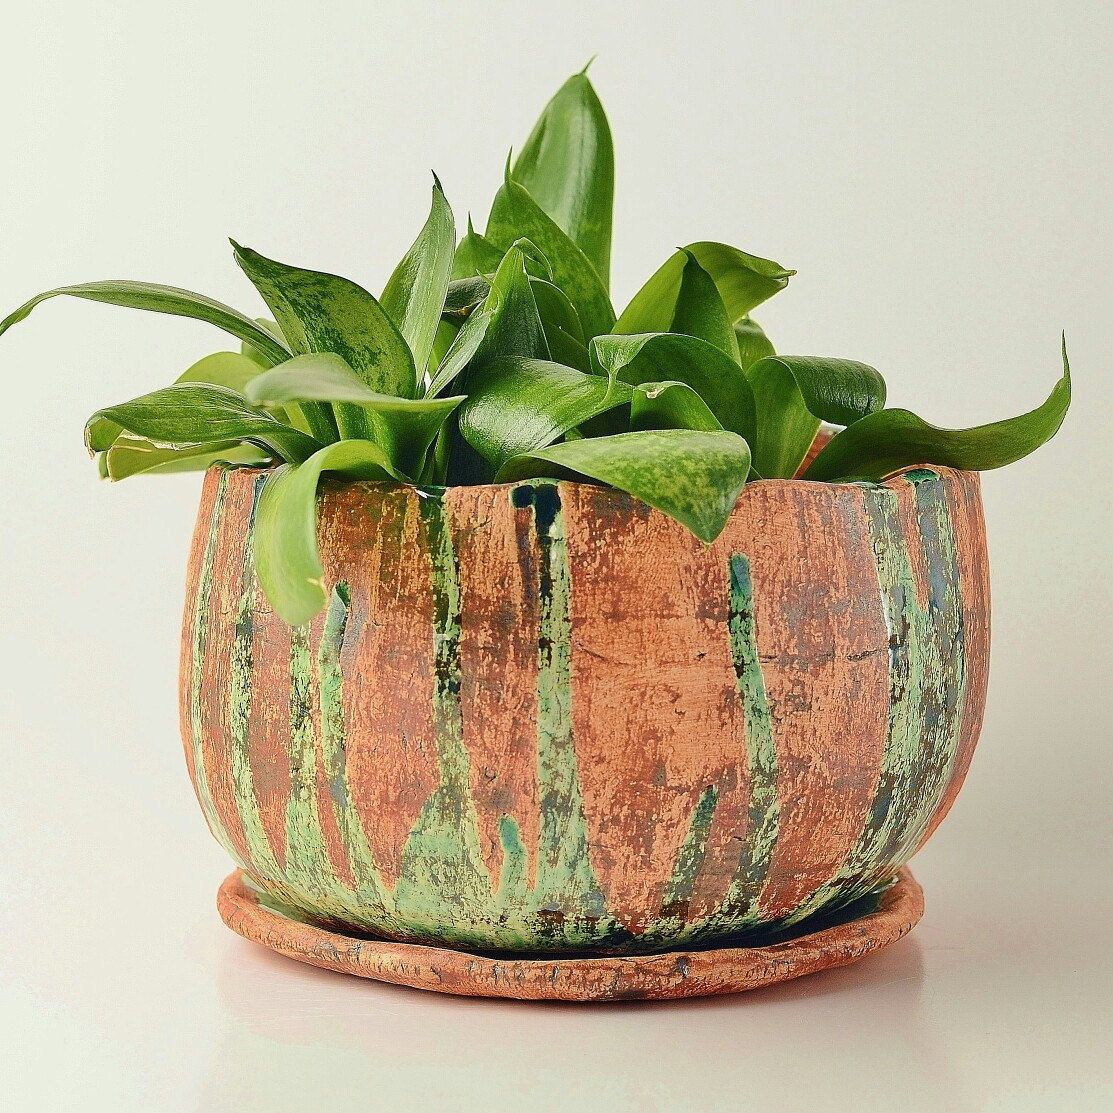 Rustic Ceramic Desk Window Large Planter Pot 5 With Drainage And Saucer Large Flower Pots Pottery Planters